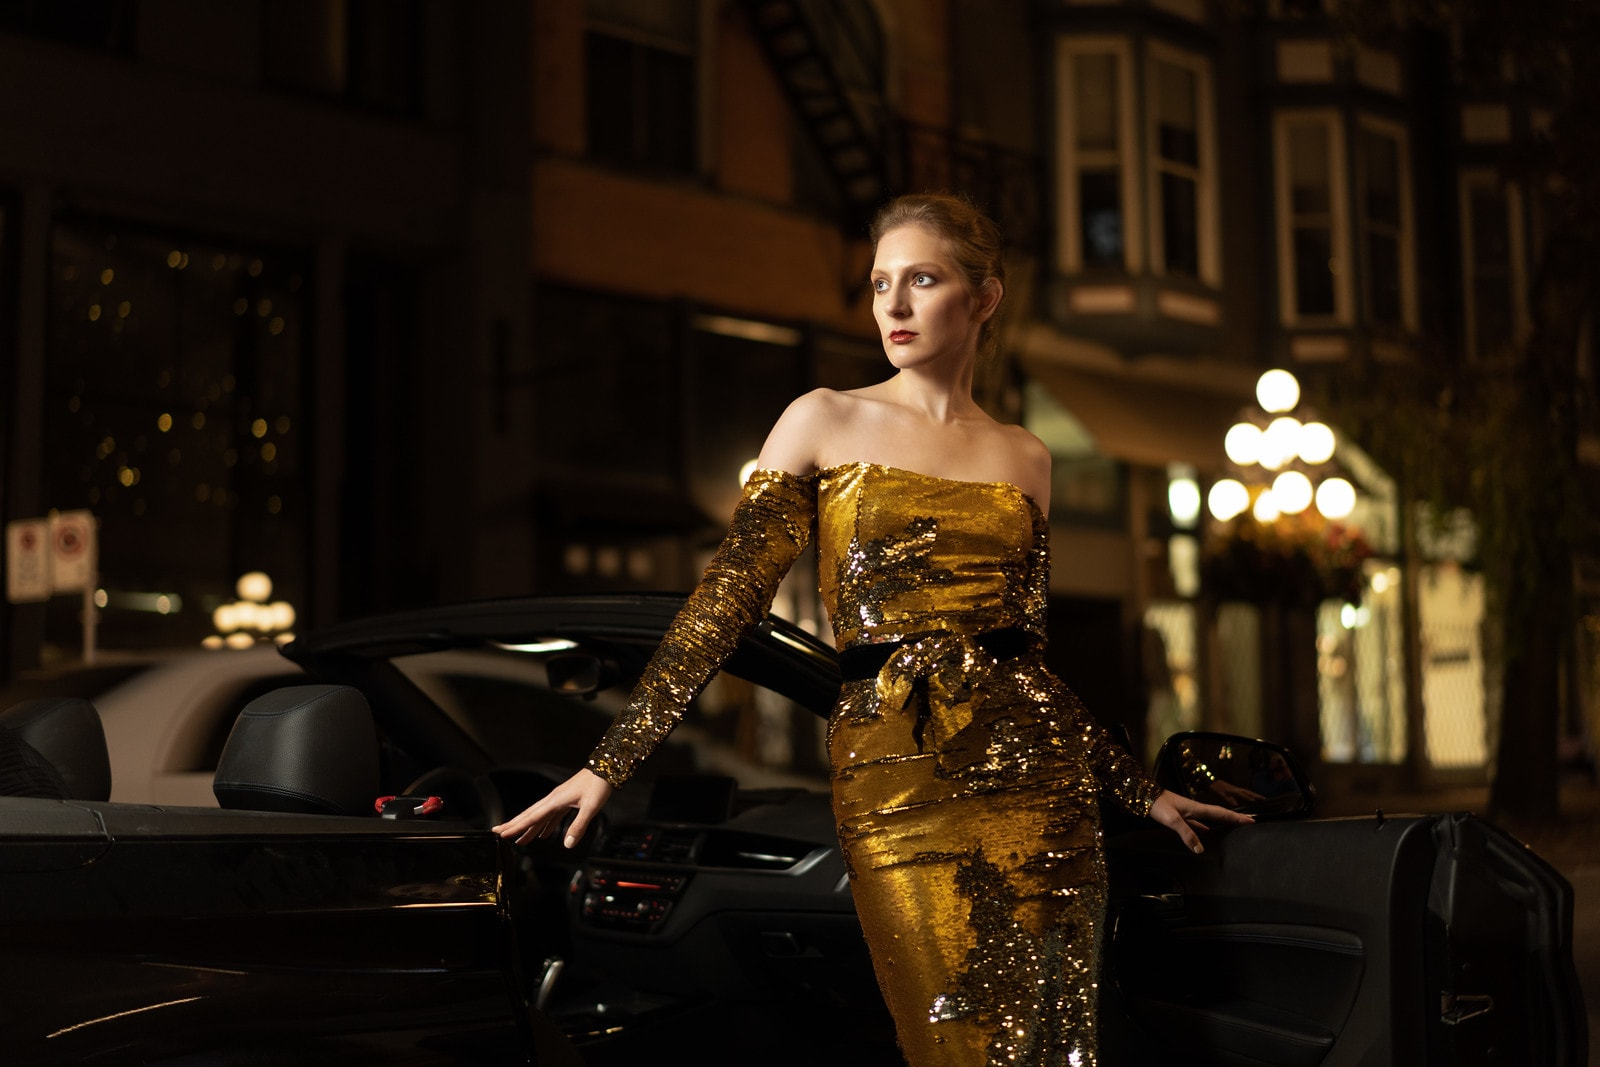 Portrait of woman in gold